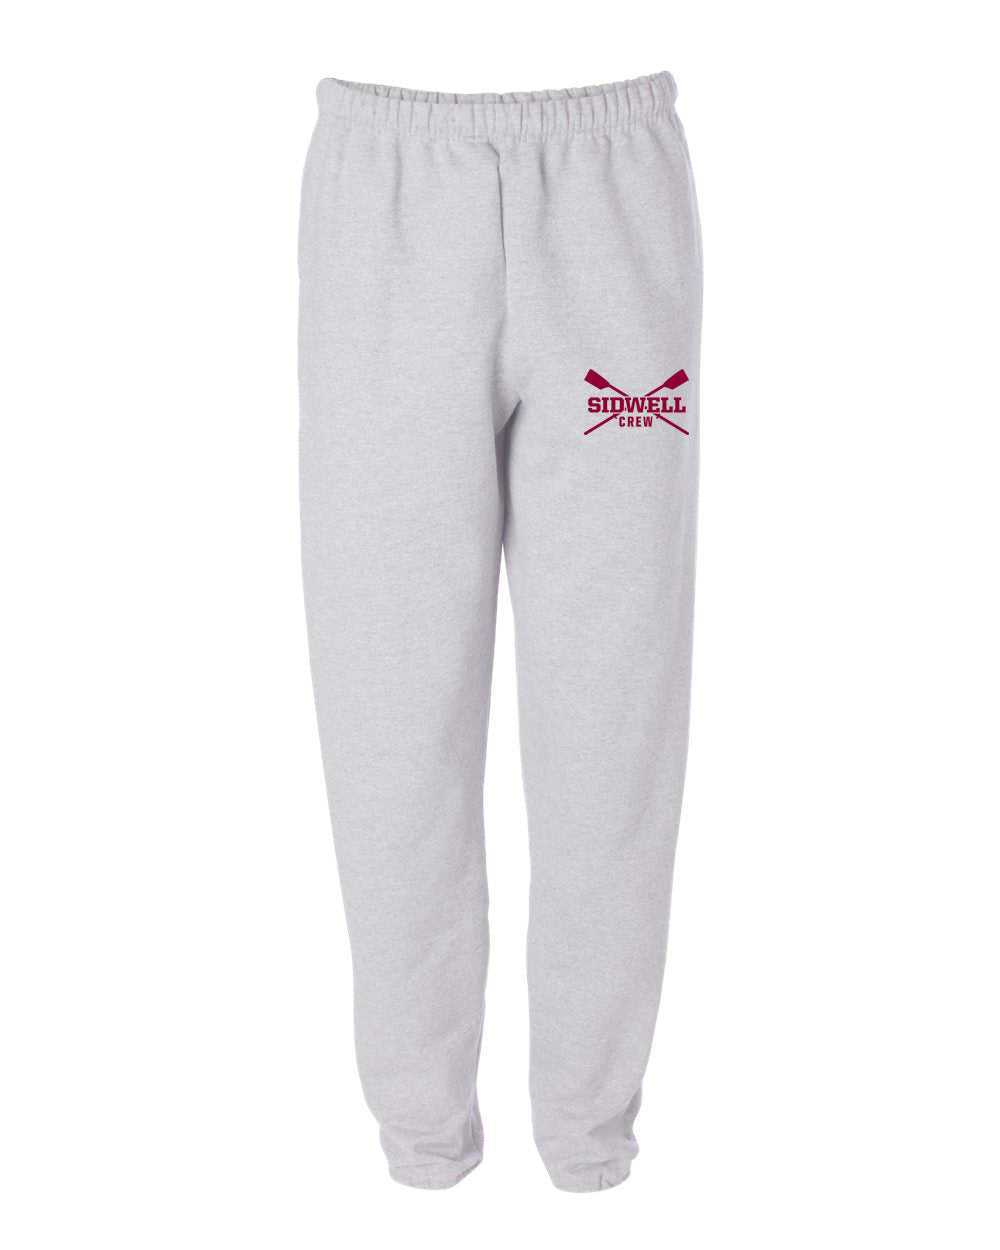 Team Sidwell Friends Rowing Sweatpants